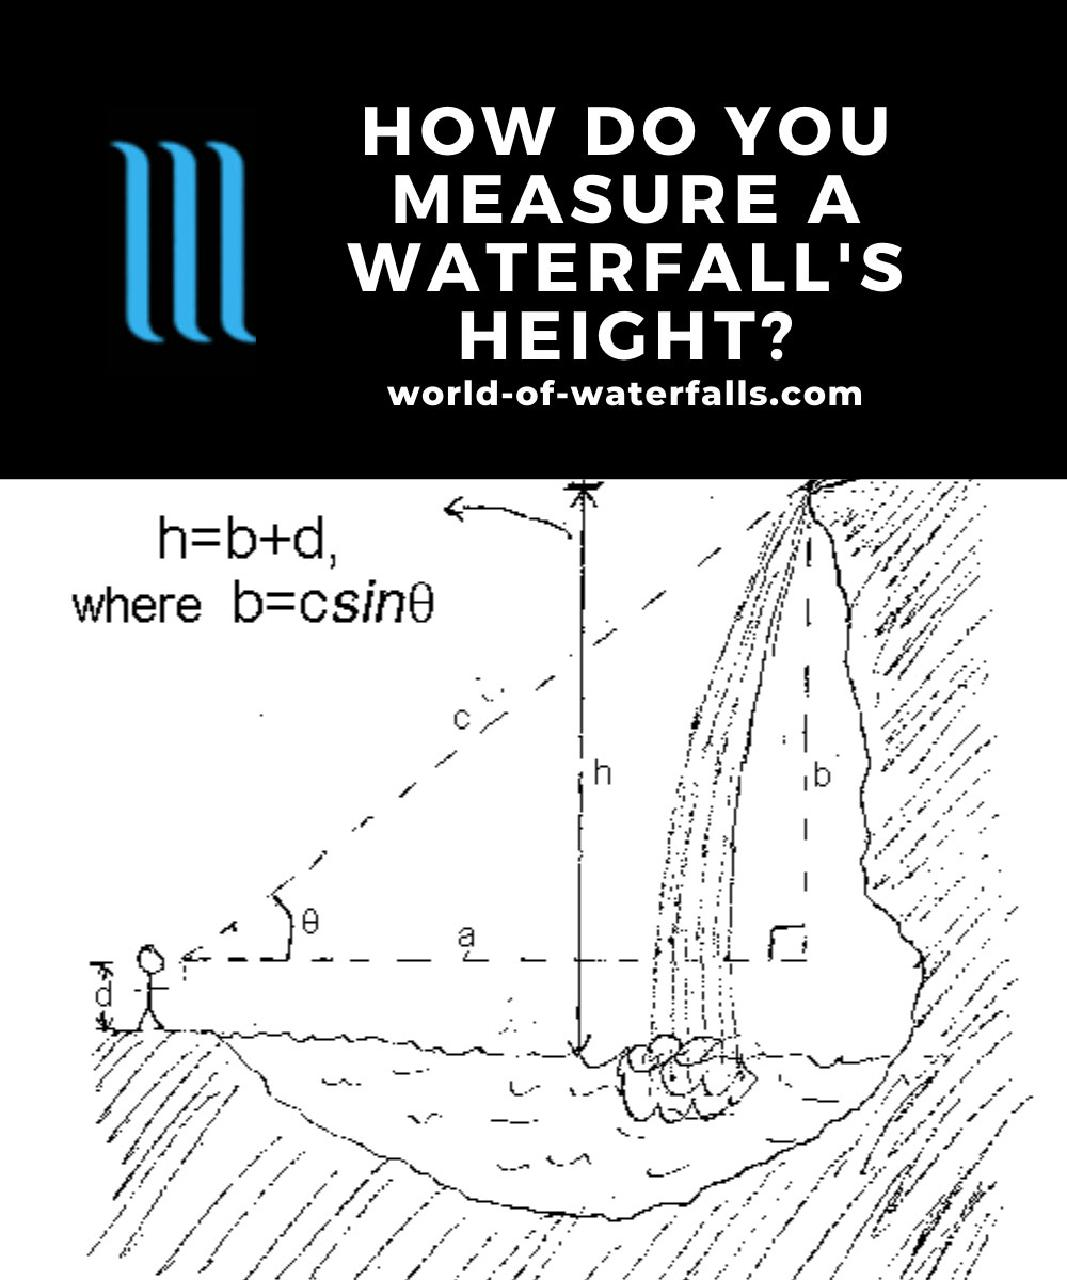 How Do You Measure A Waterfall's Height?